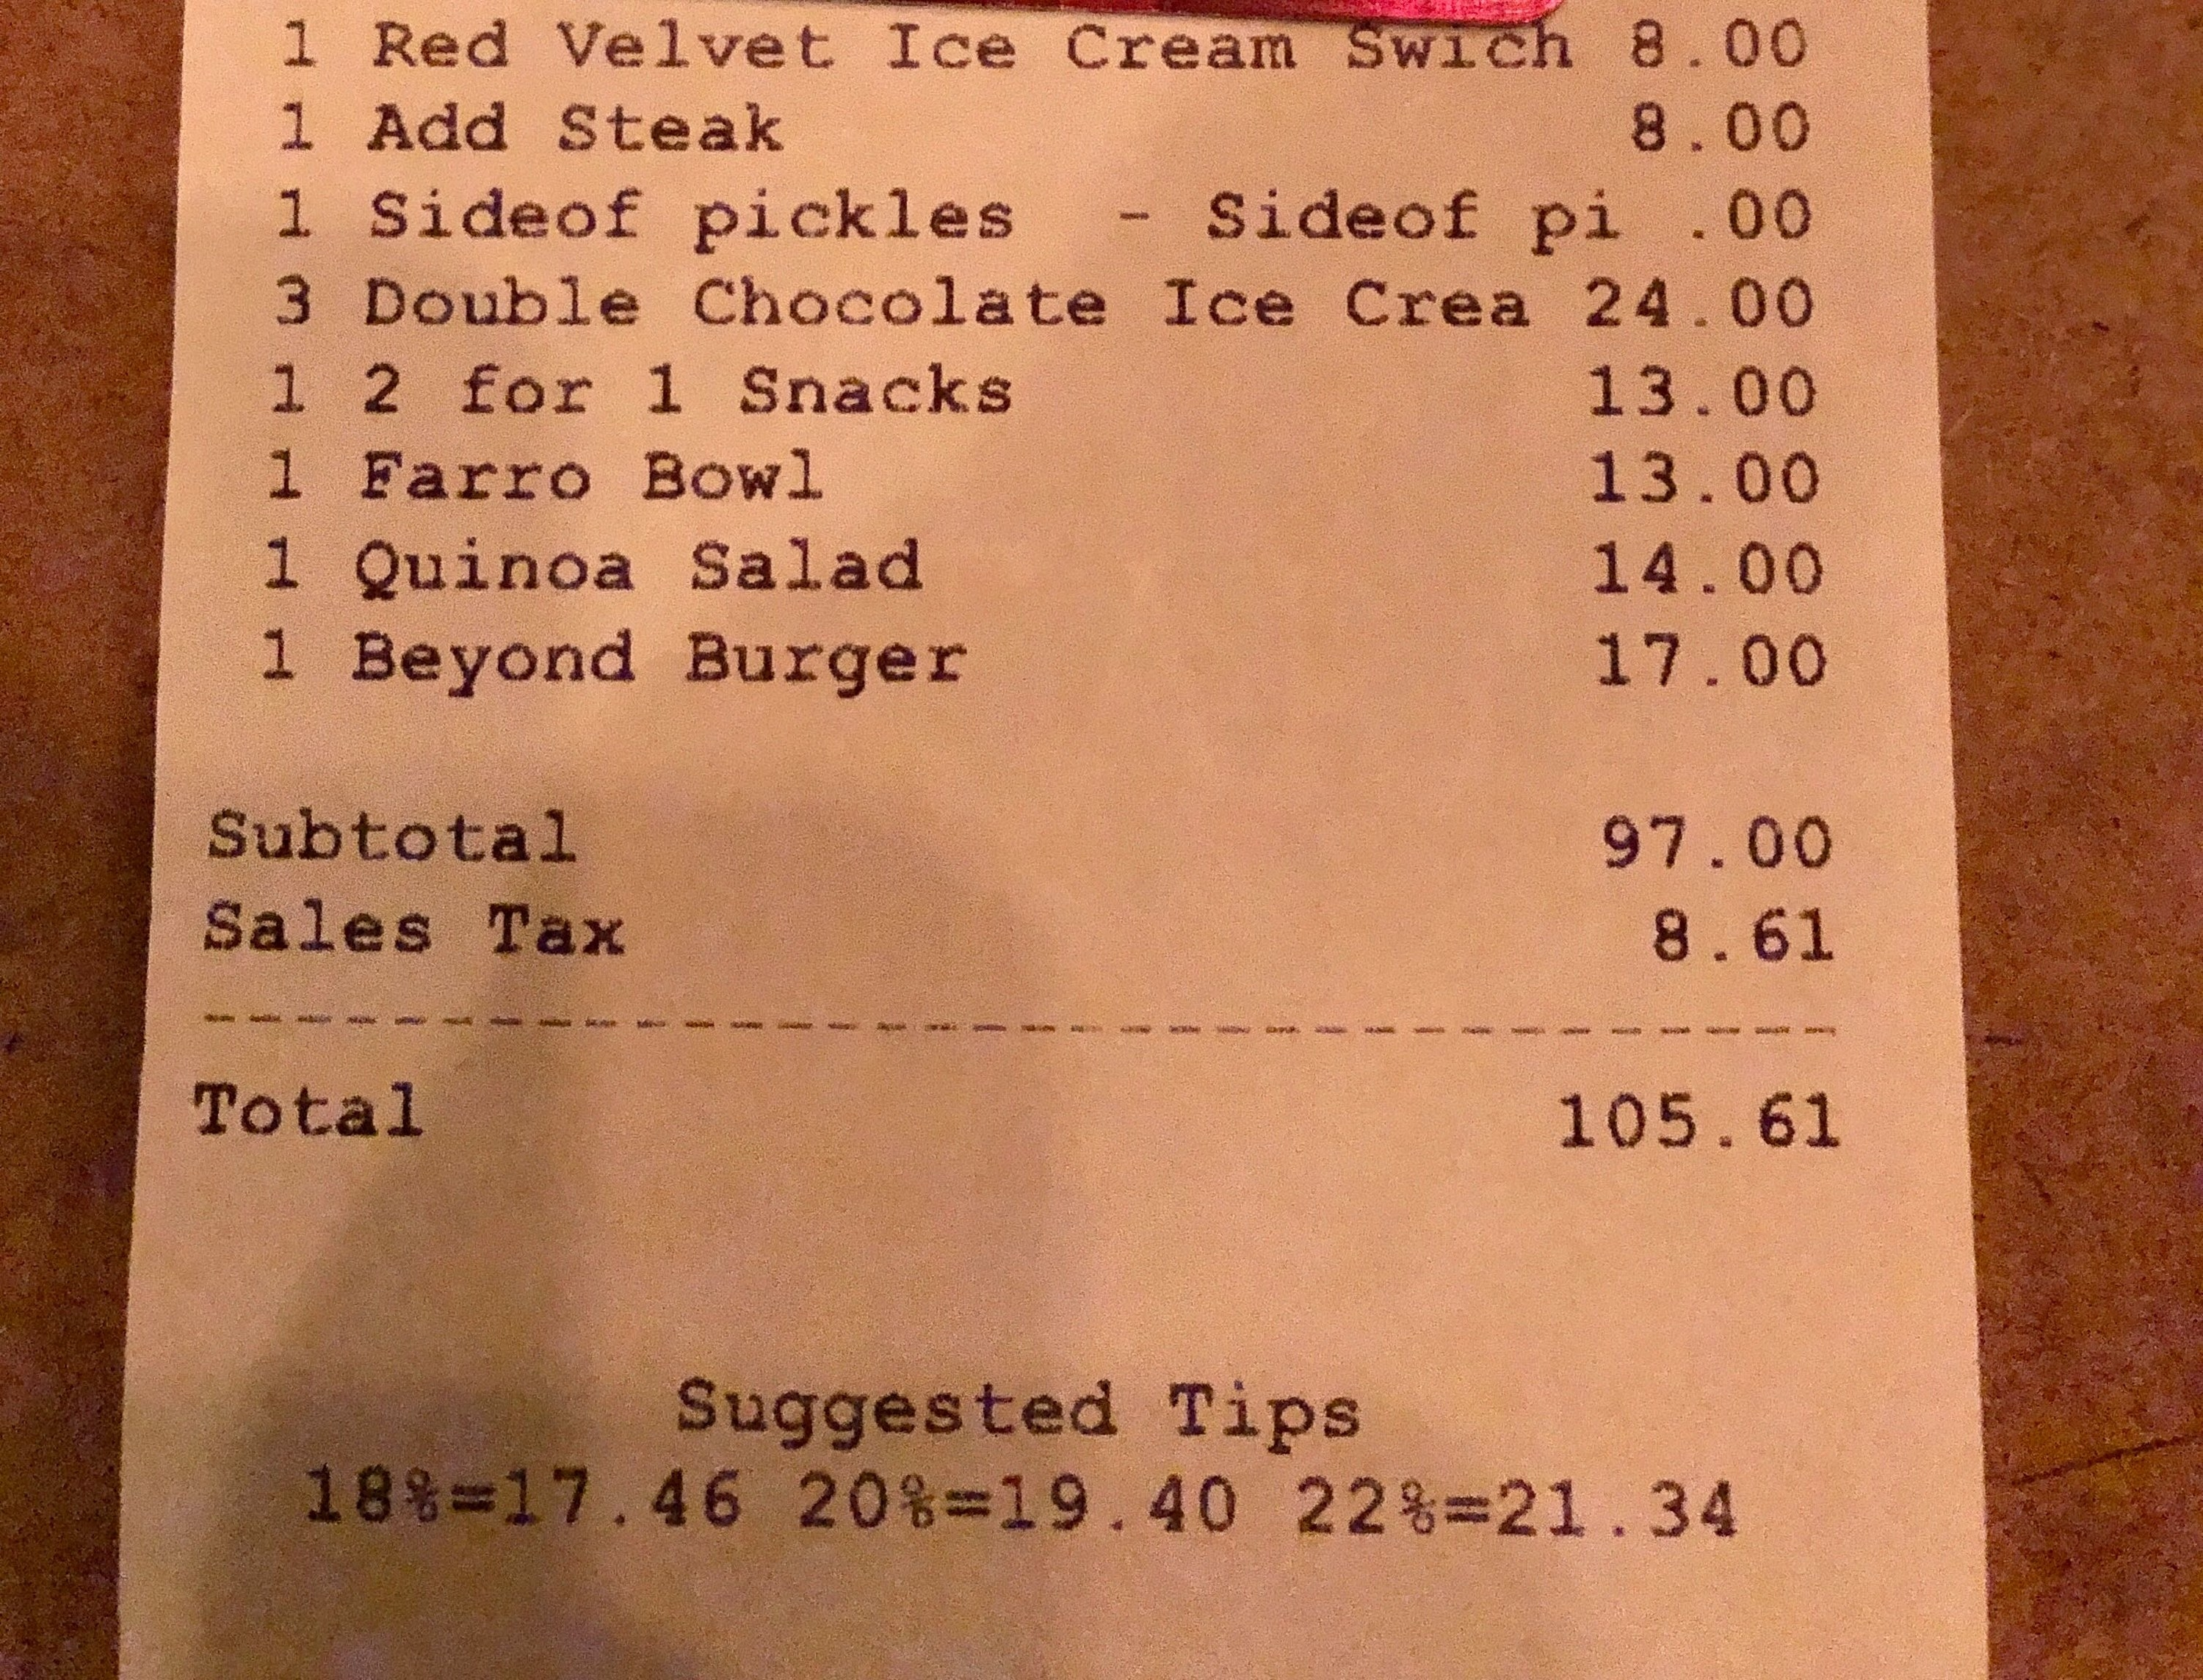 picture of a receipt with a total of $10.61